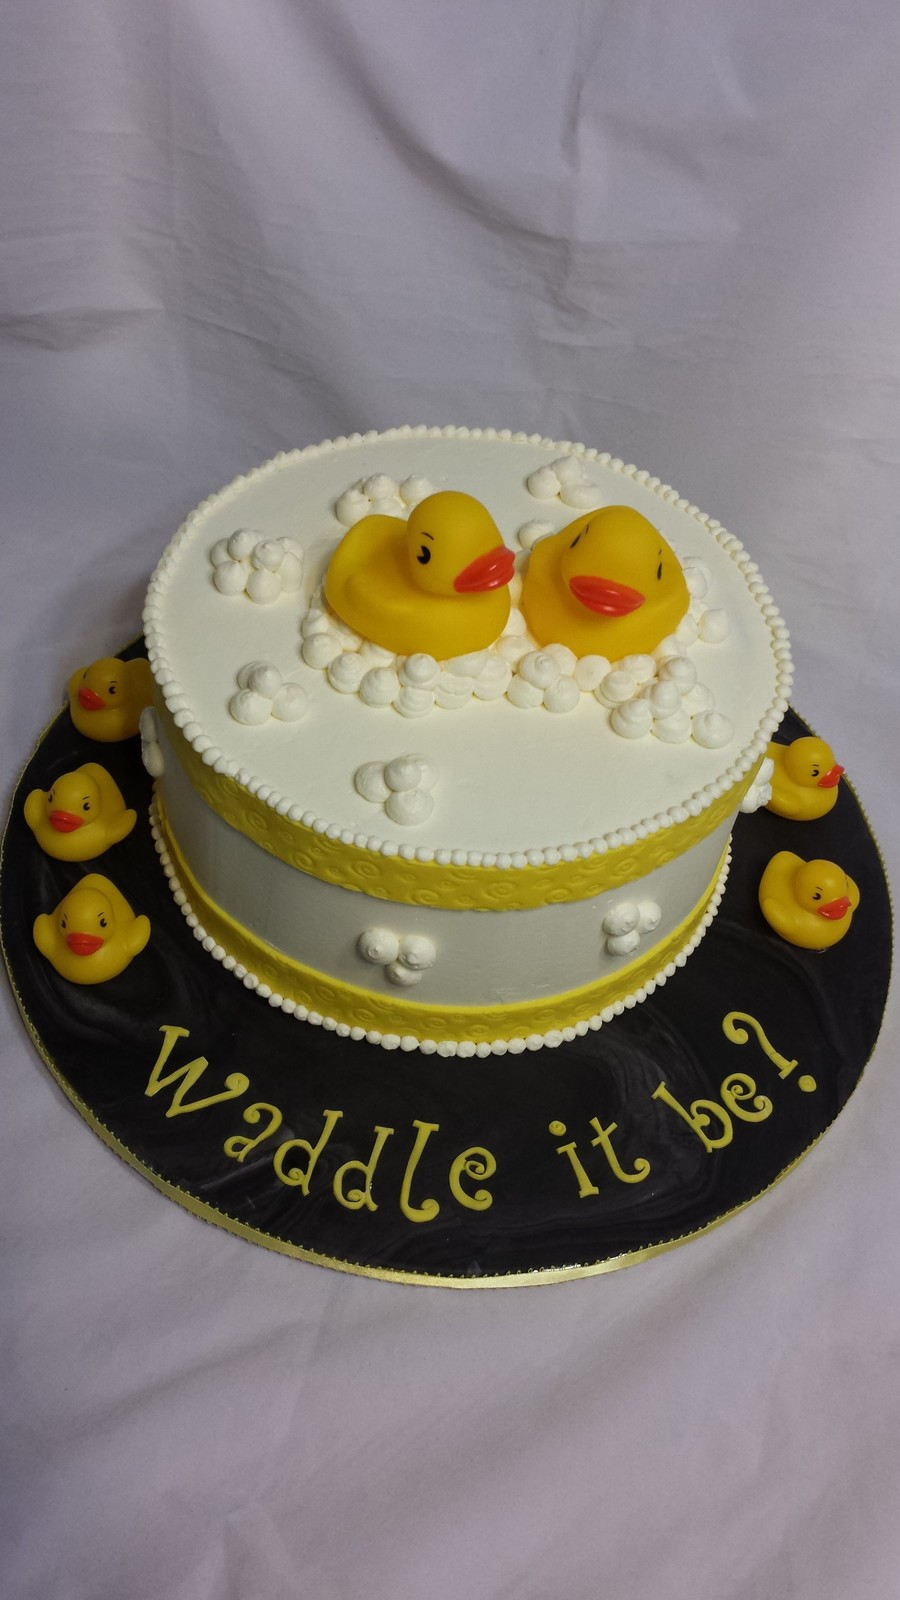 Waddle It Be A Gender Reveal Cake  CakeCentralcom